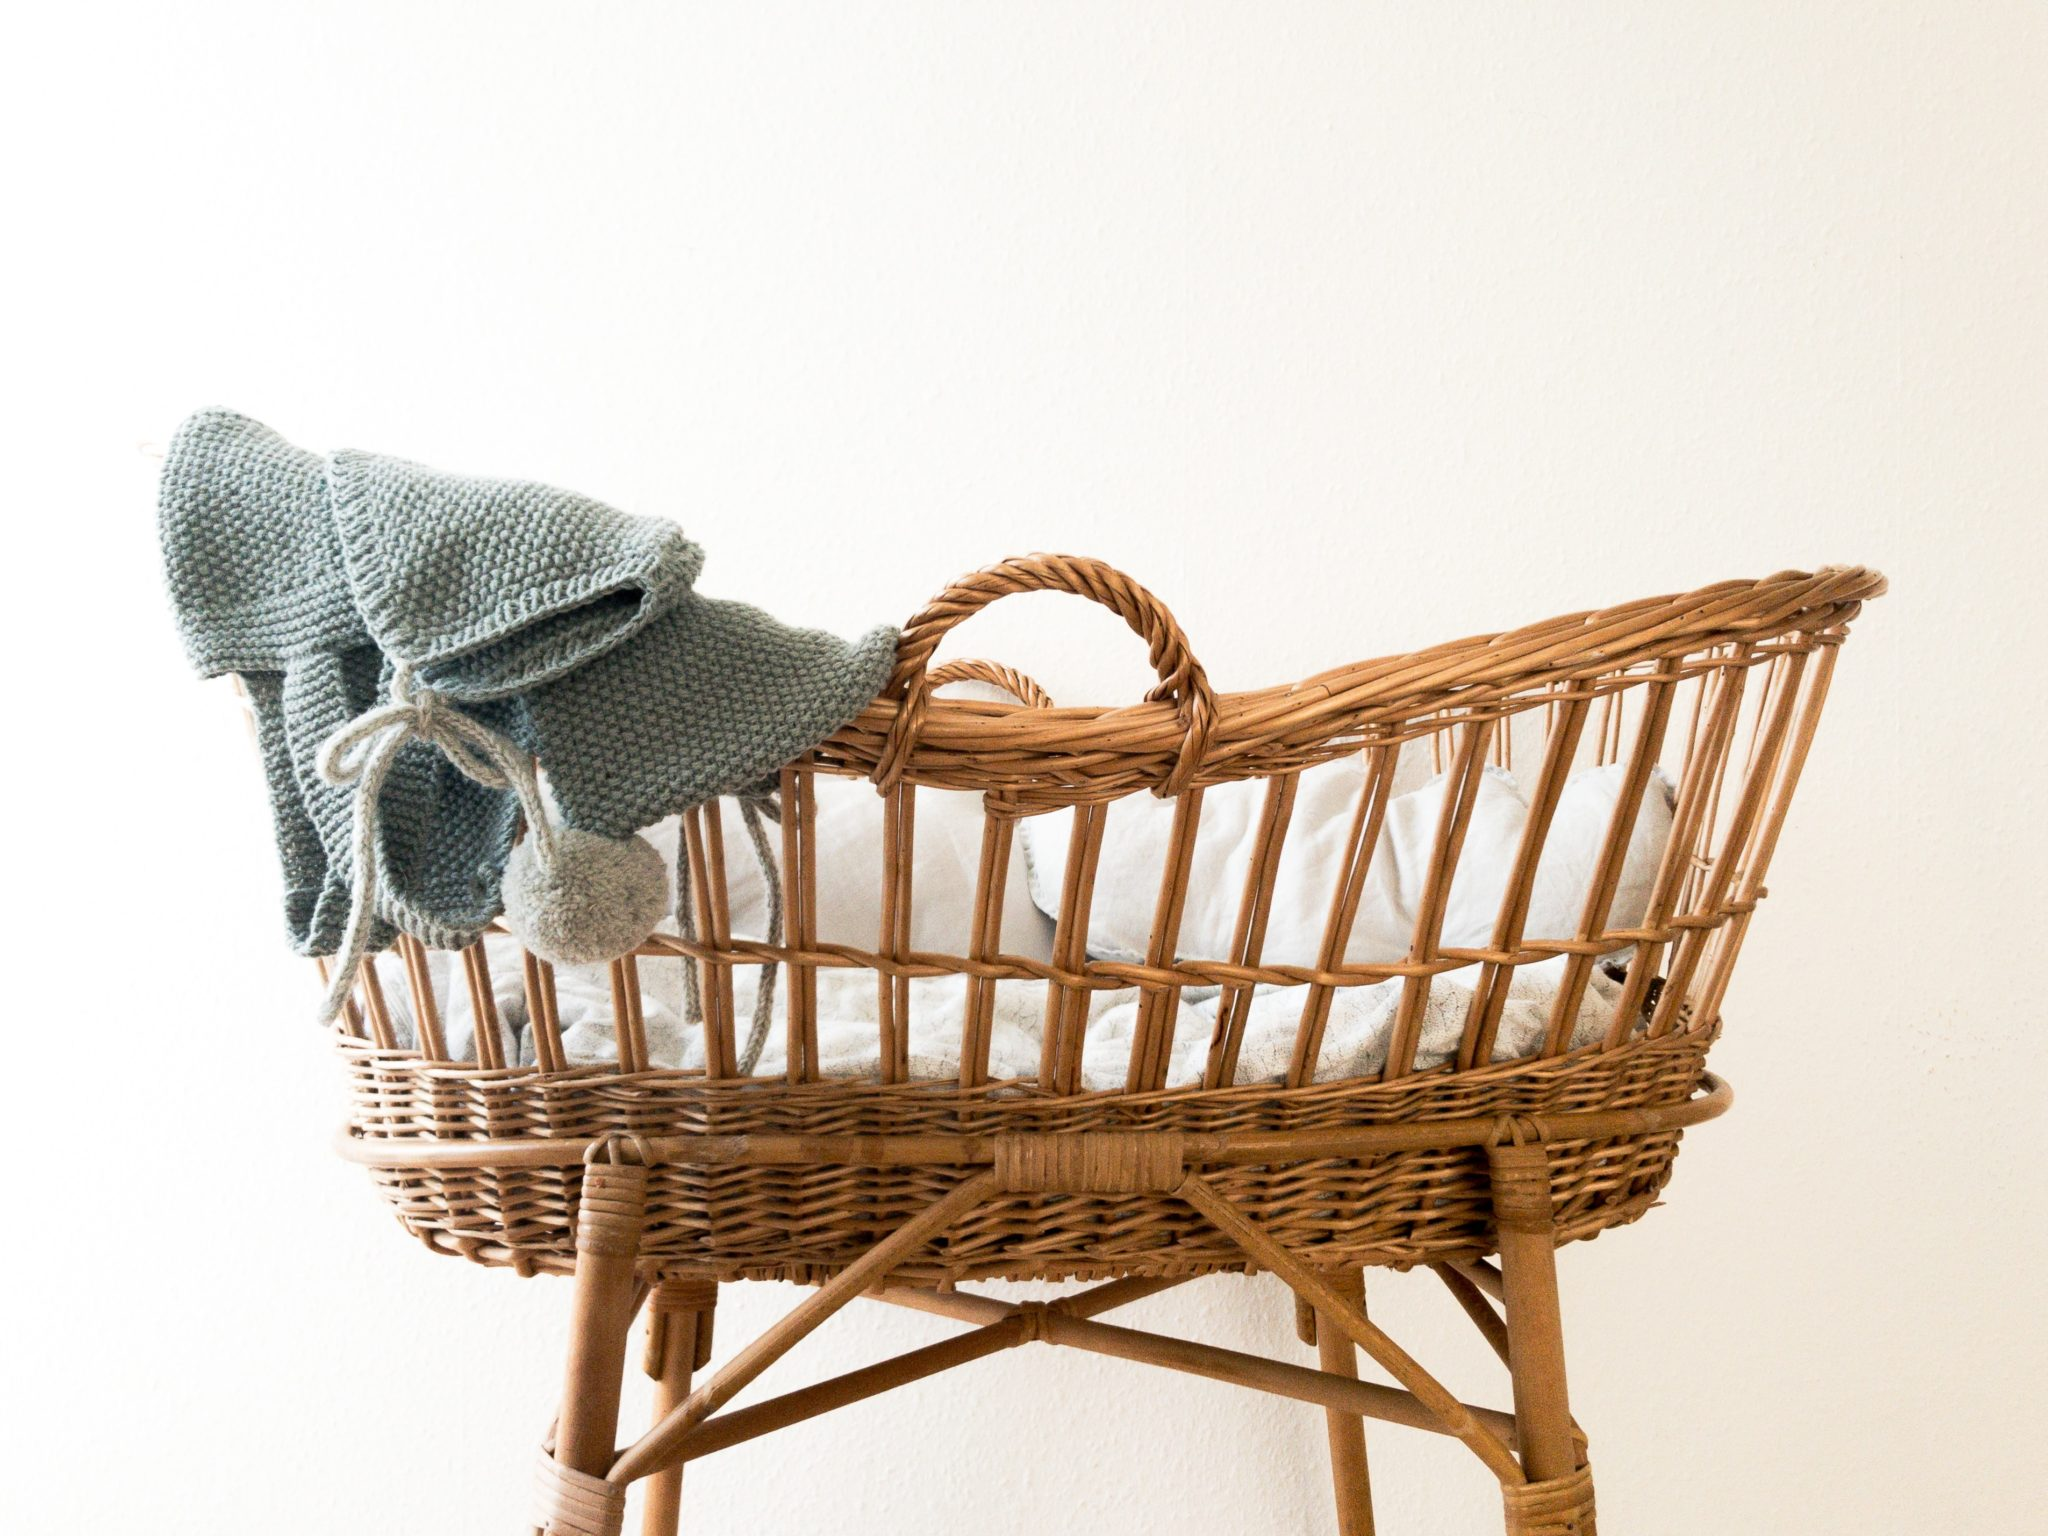 a wicker baby carriage with a blue blanket on top